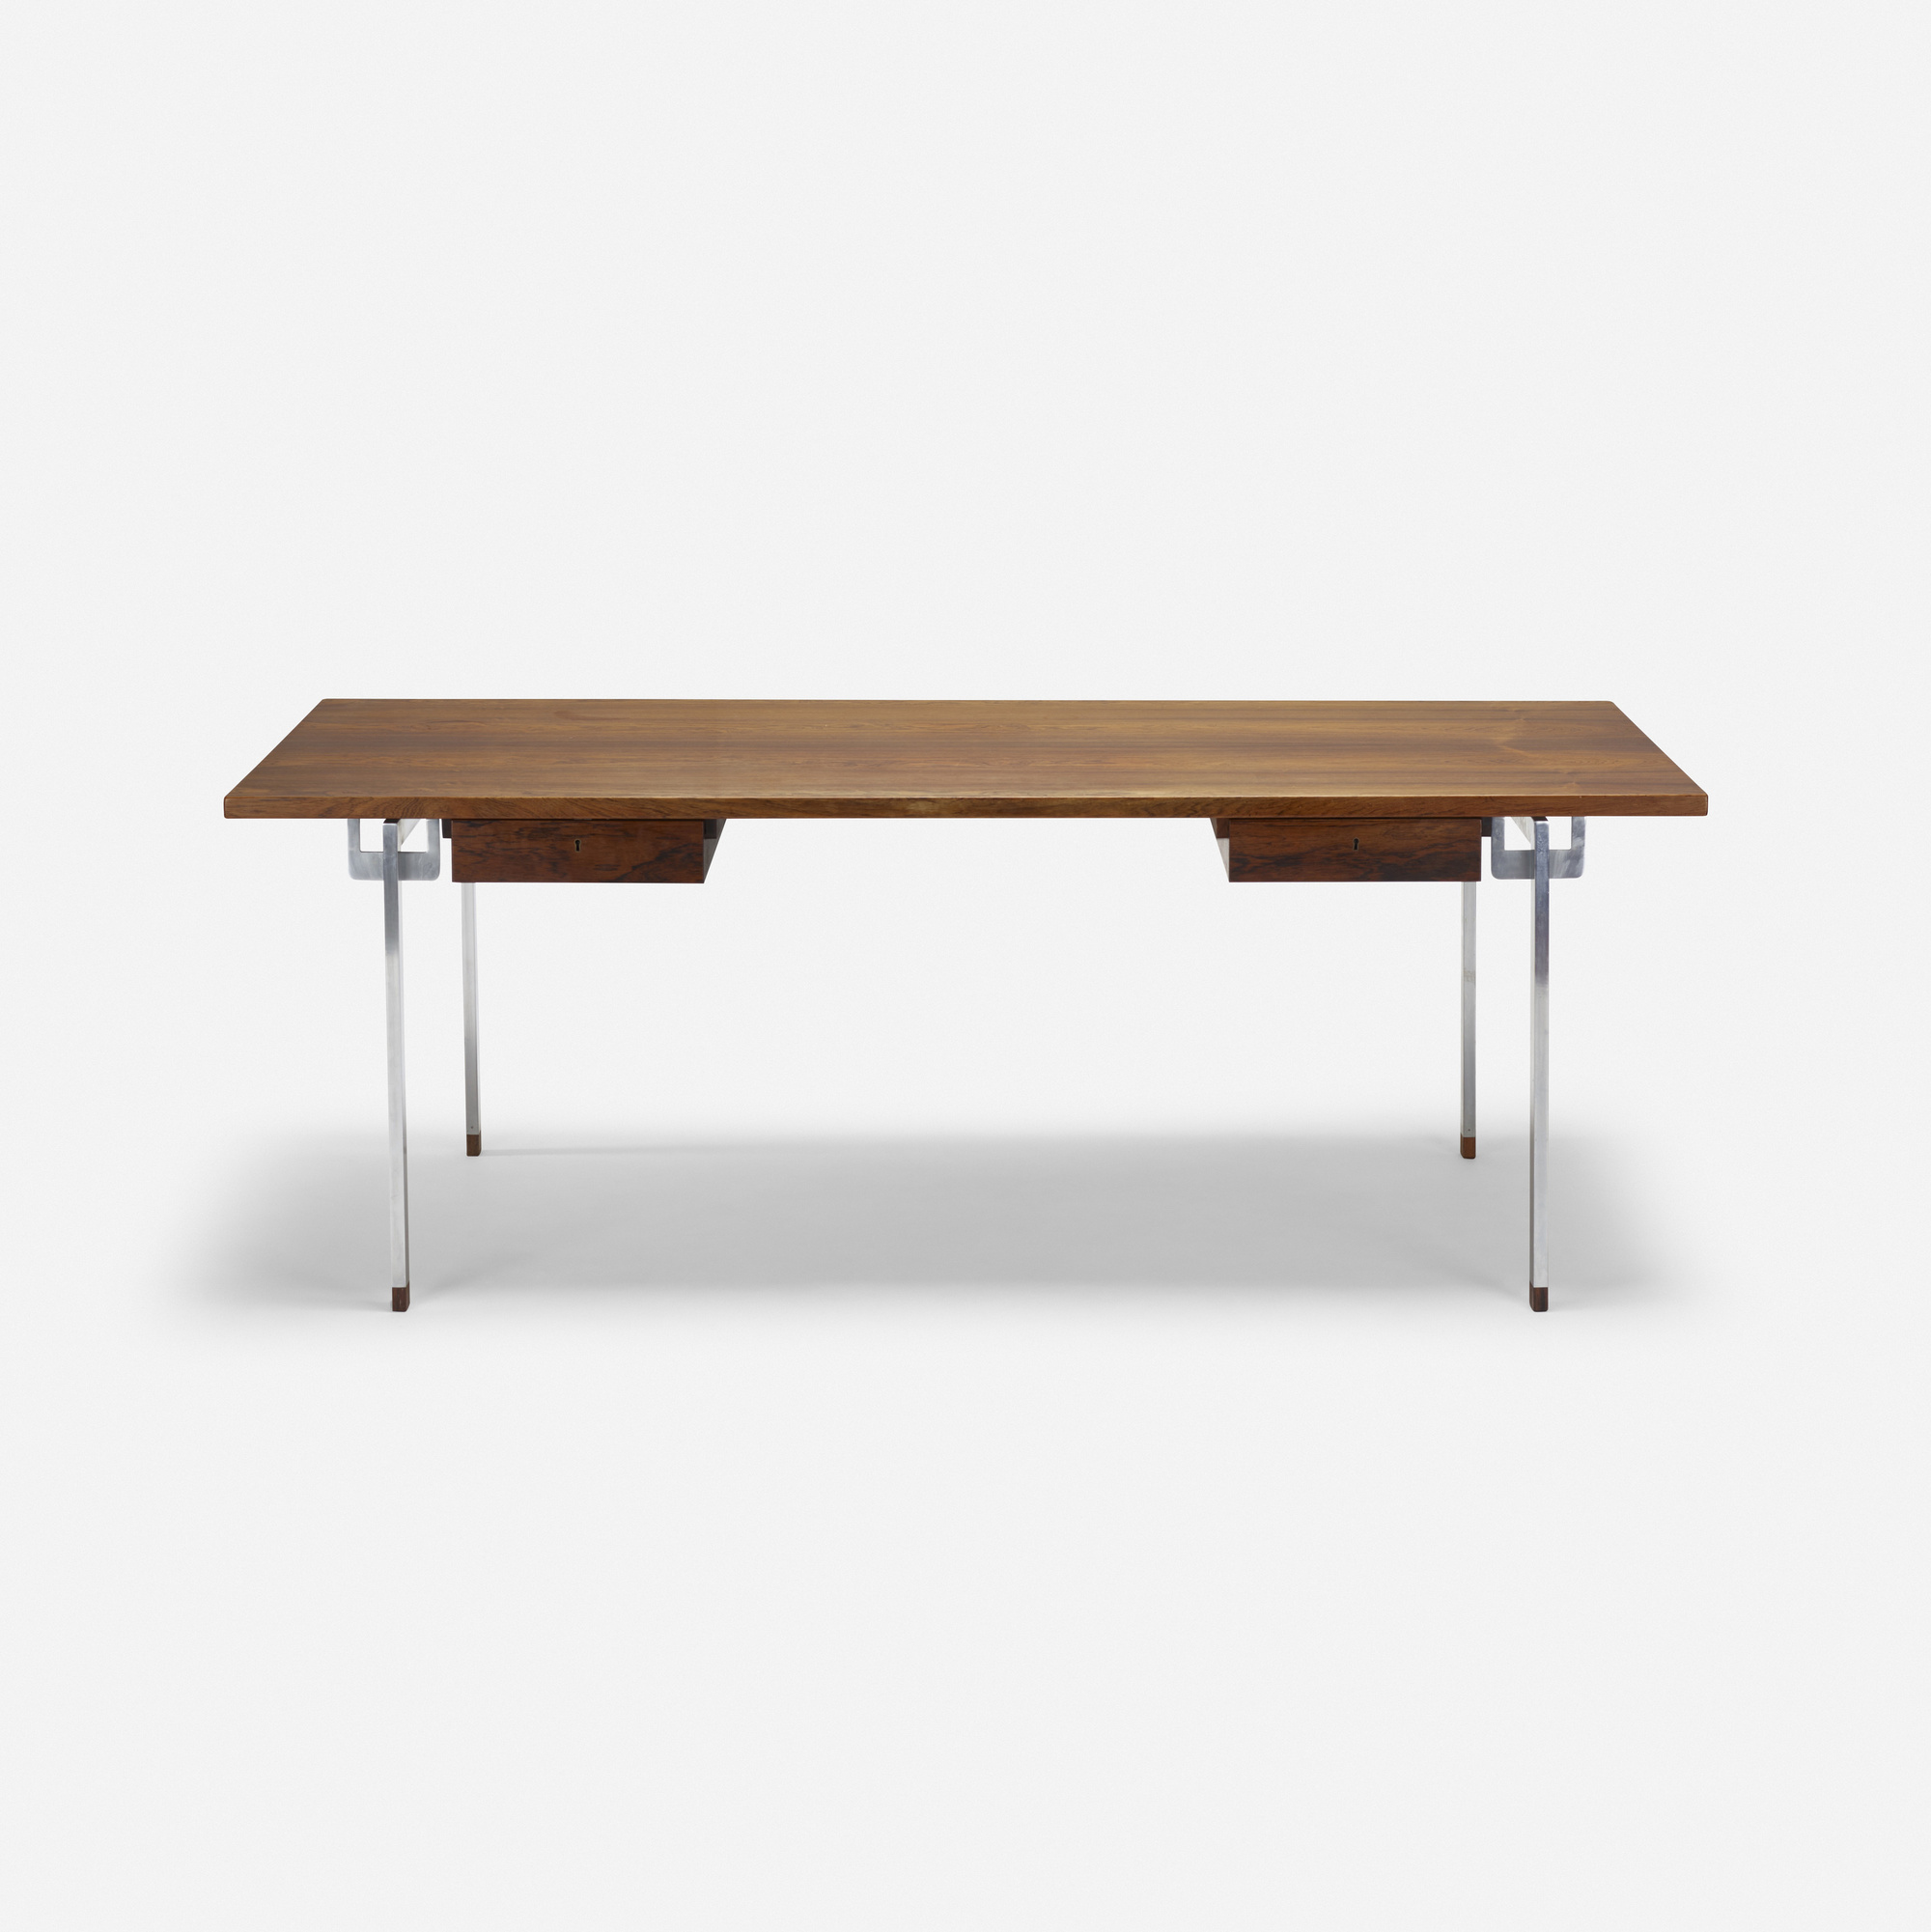 266 Hans J Wegner Desk Model At325 2 Of 4